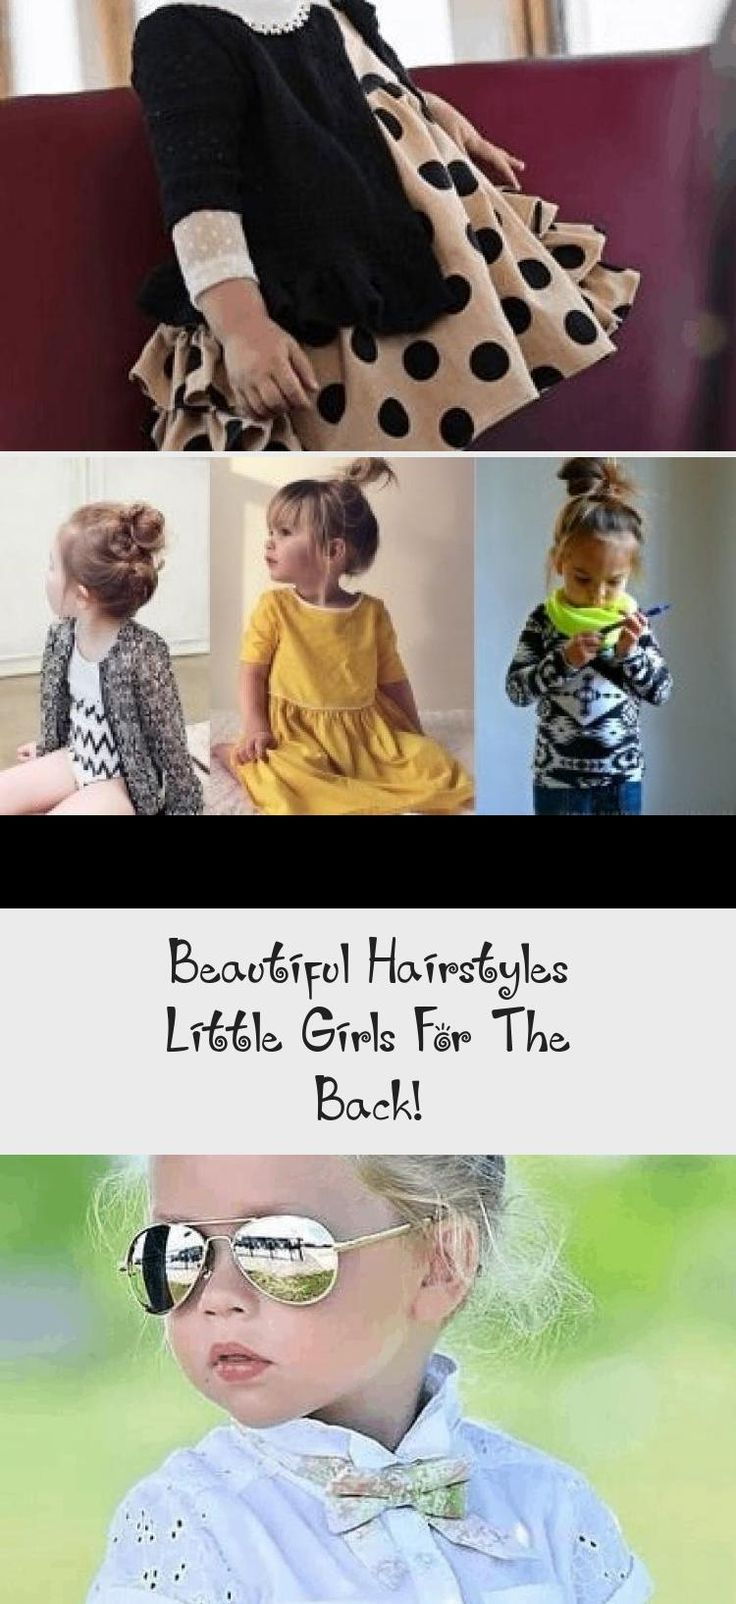 Beautiful Hairstyles Little Girls For The Back!  #beautiful #girls #hairstyles #little #babyhairstylesStepByStep #babyhairstylesDaughters #babyhairstylesEdges #Littlebabyhairstyles #Smallbabyhairstyles